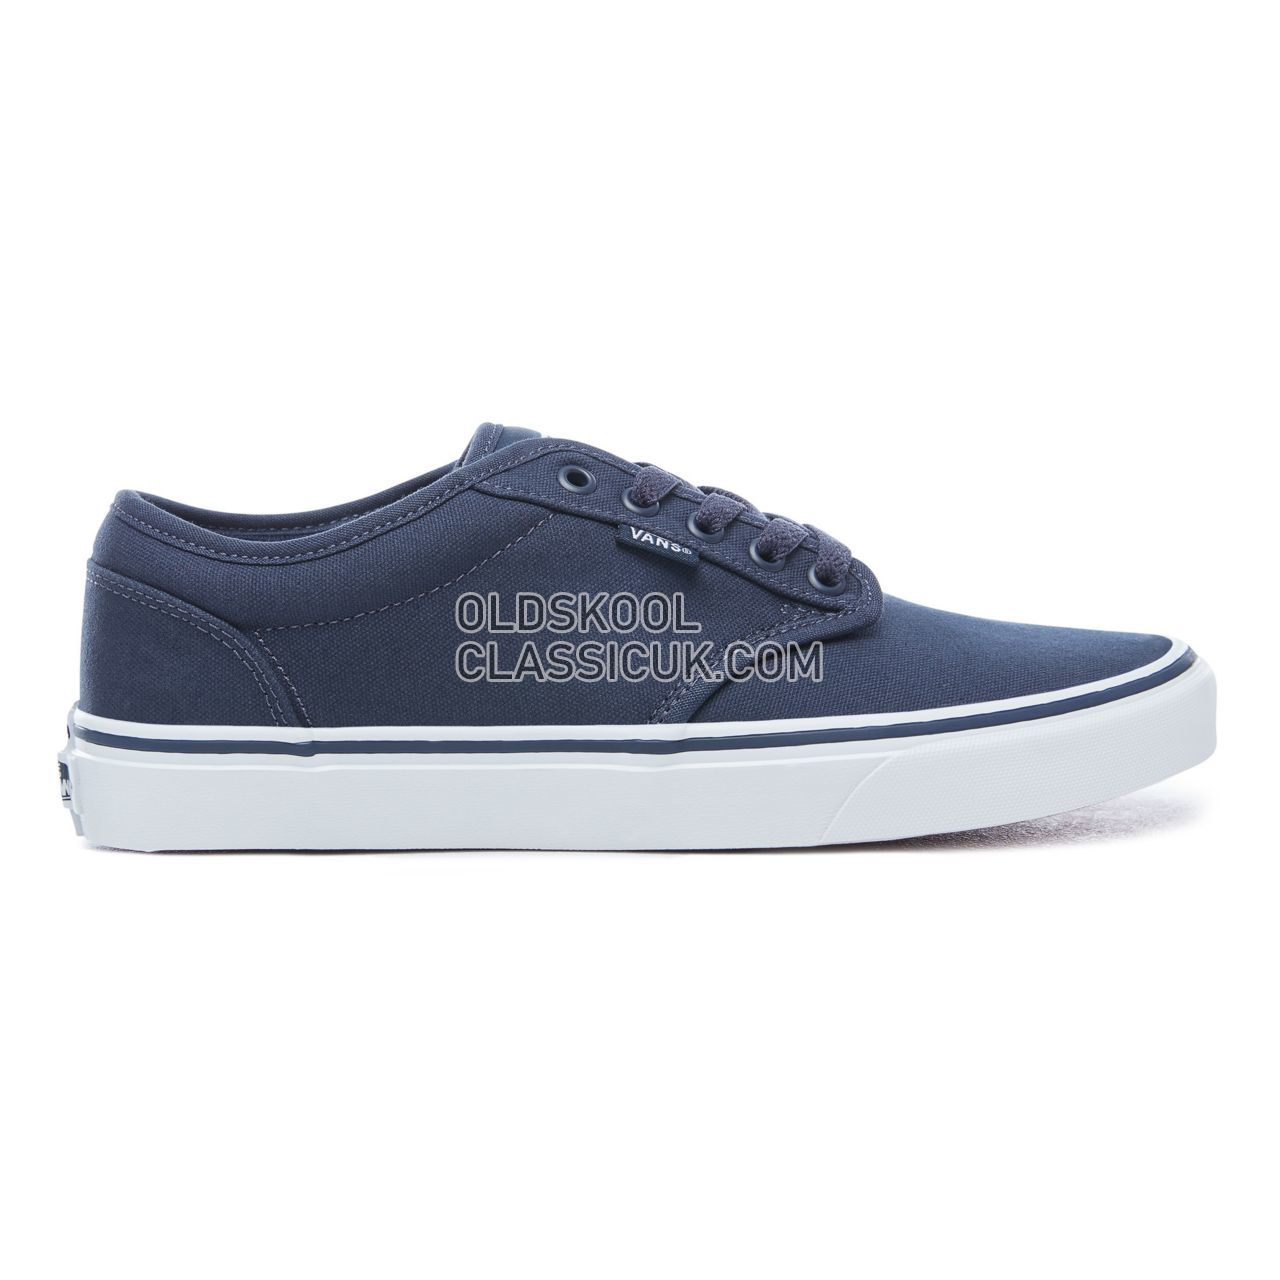 Vans Atwood Sneakers Mens NavyWhite VKC44K1 Shoes £50